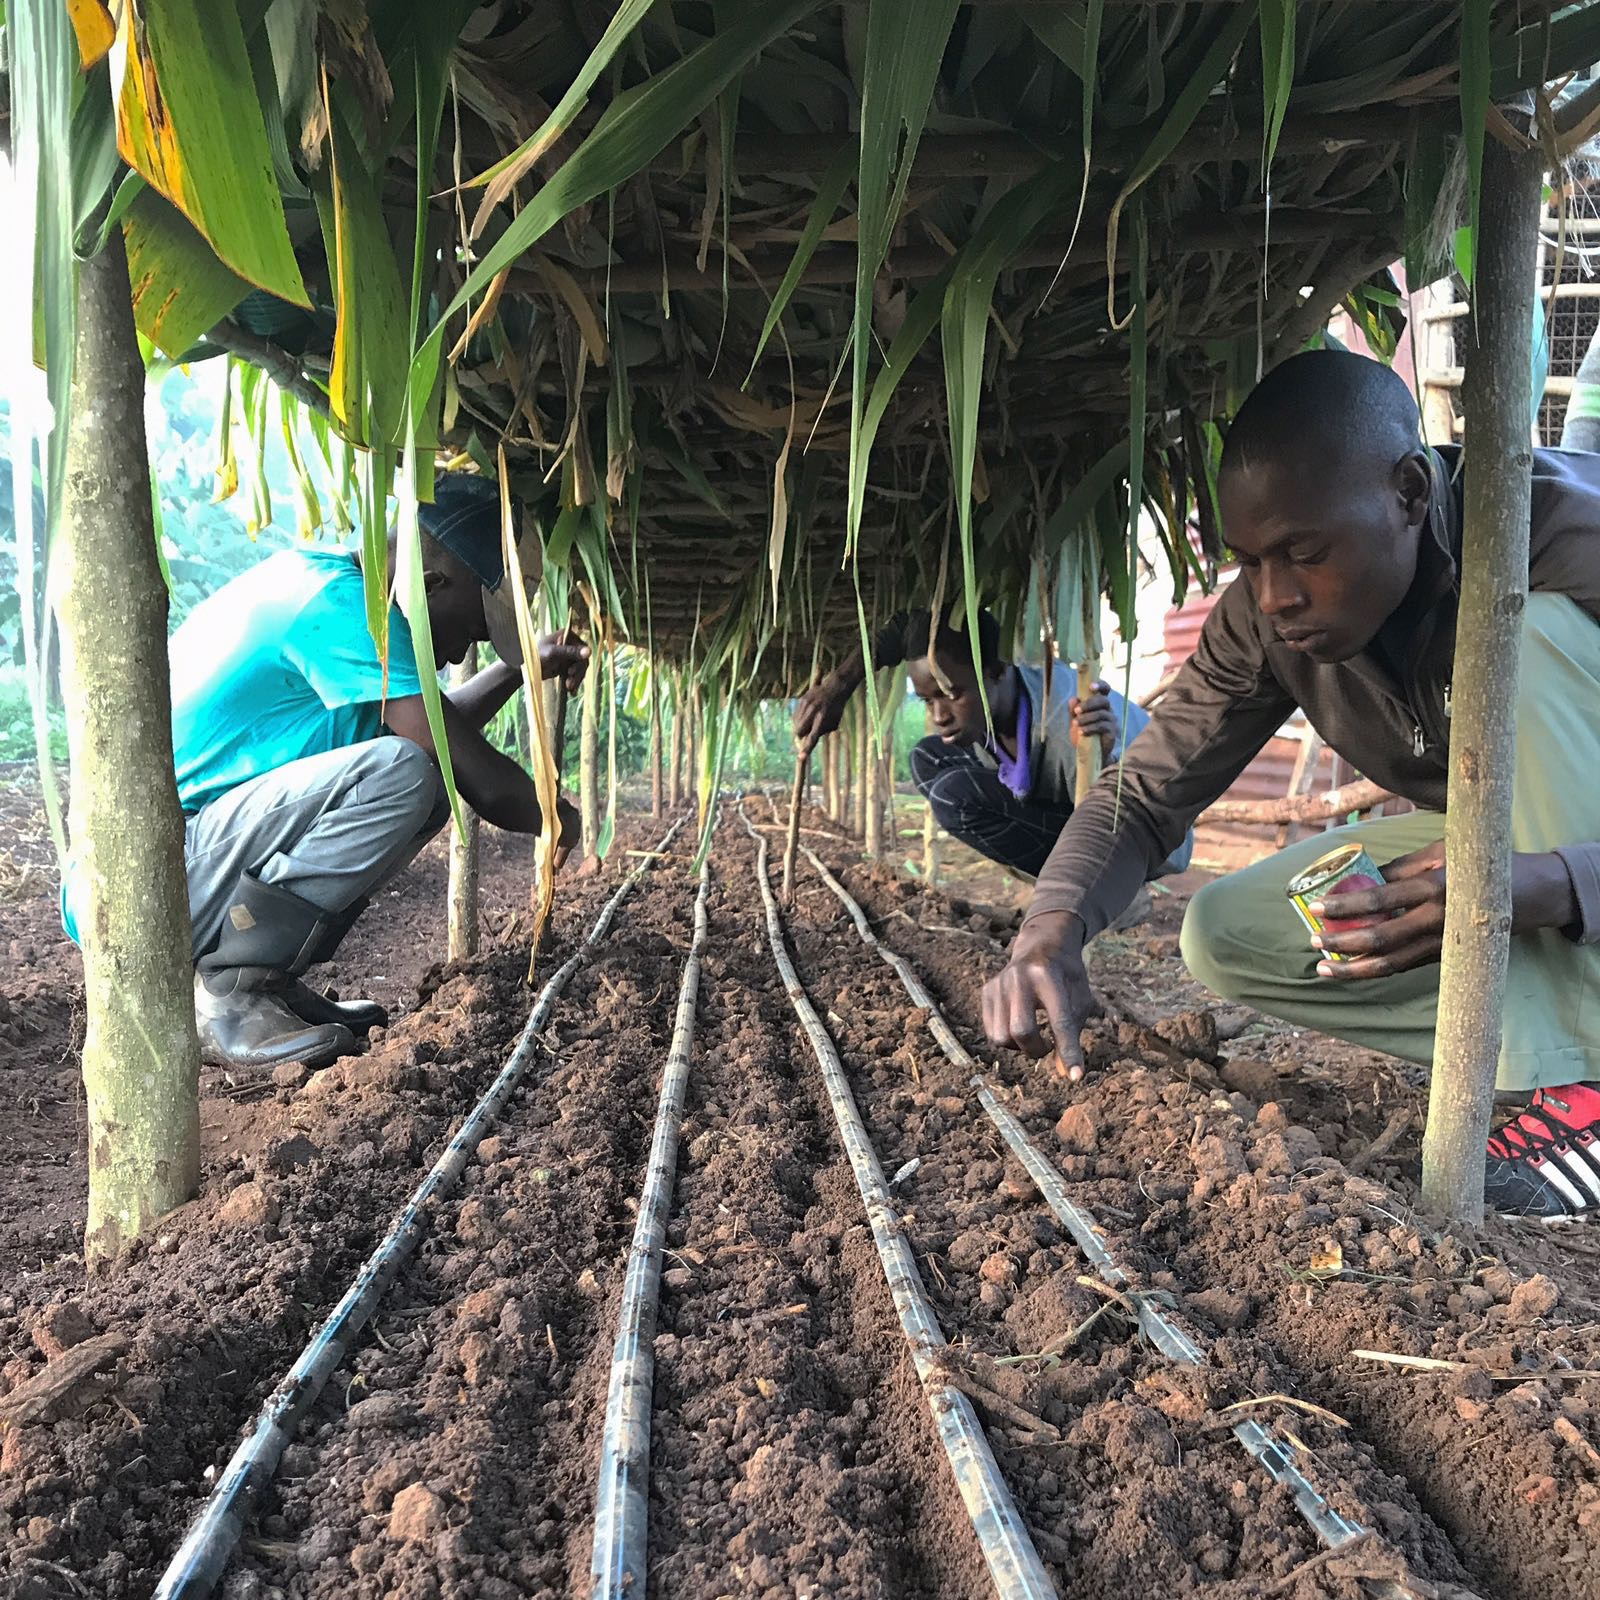 Students got hands-on experience with the practical side of the Institute, with agriculture being one of the focuses they can take at the Institute.